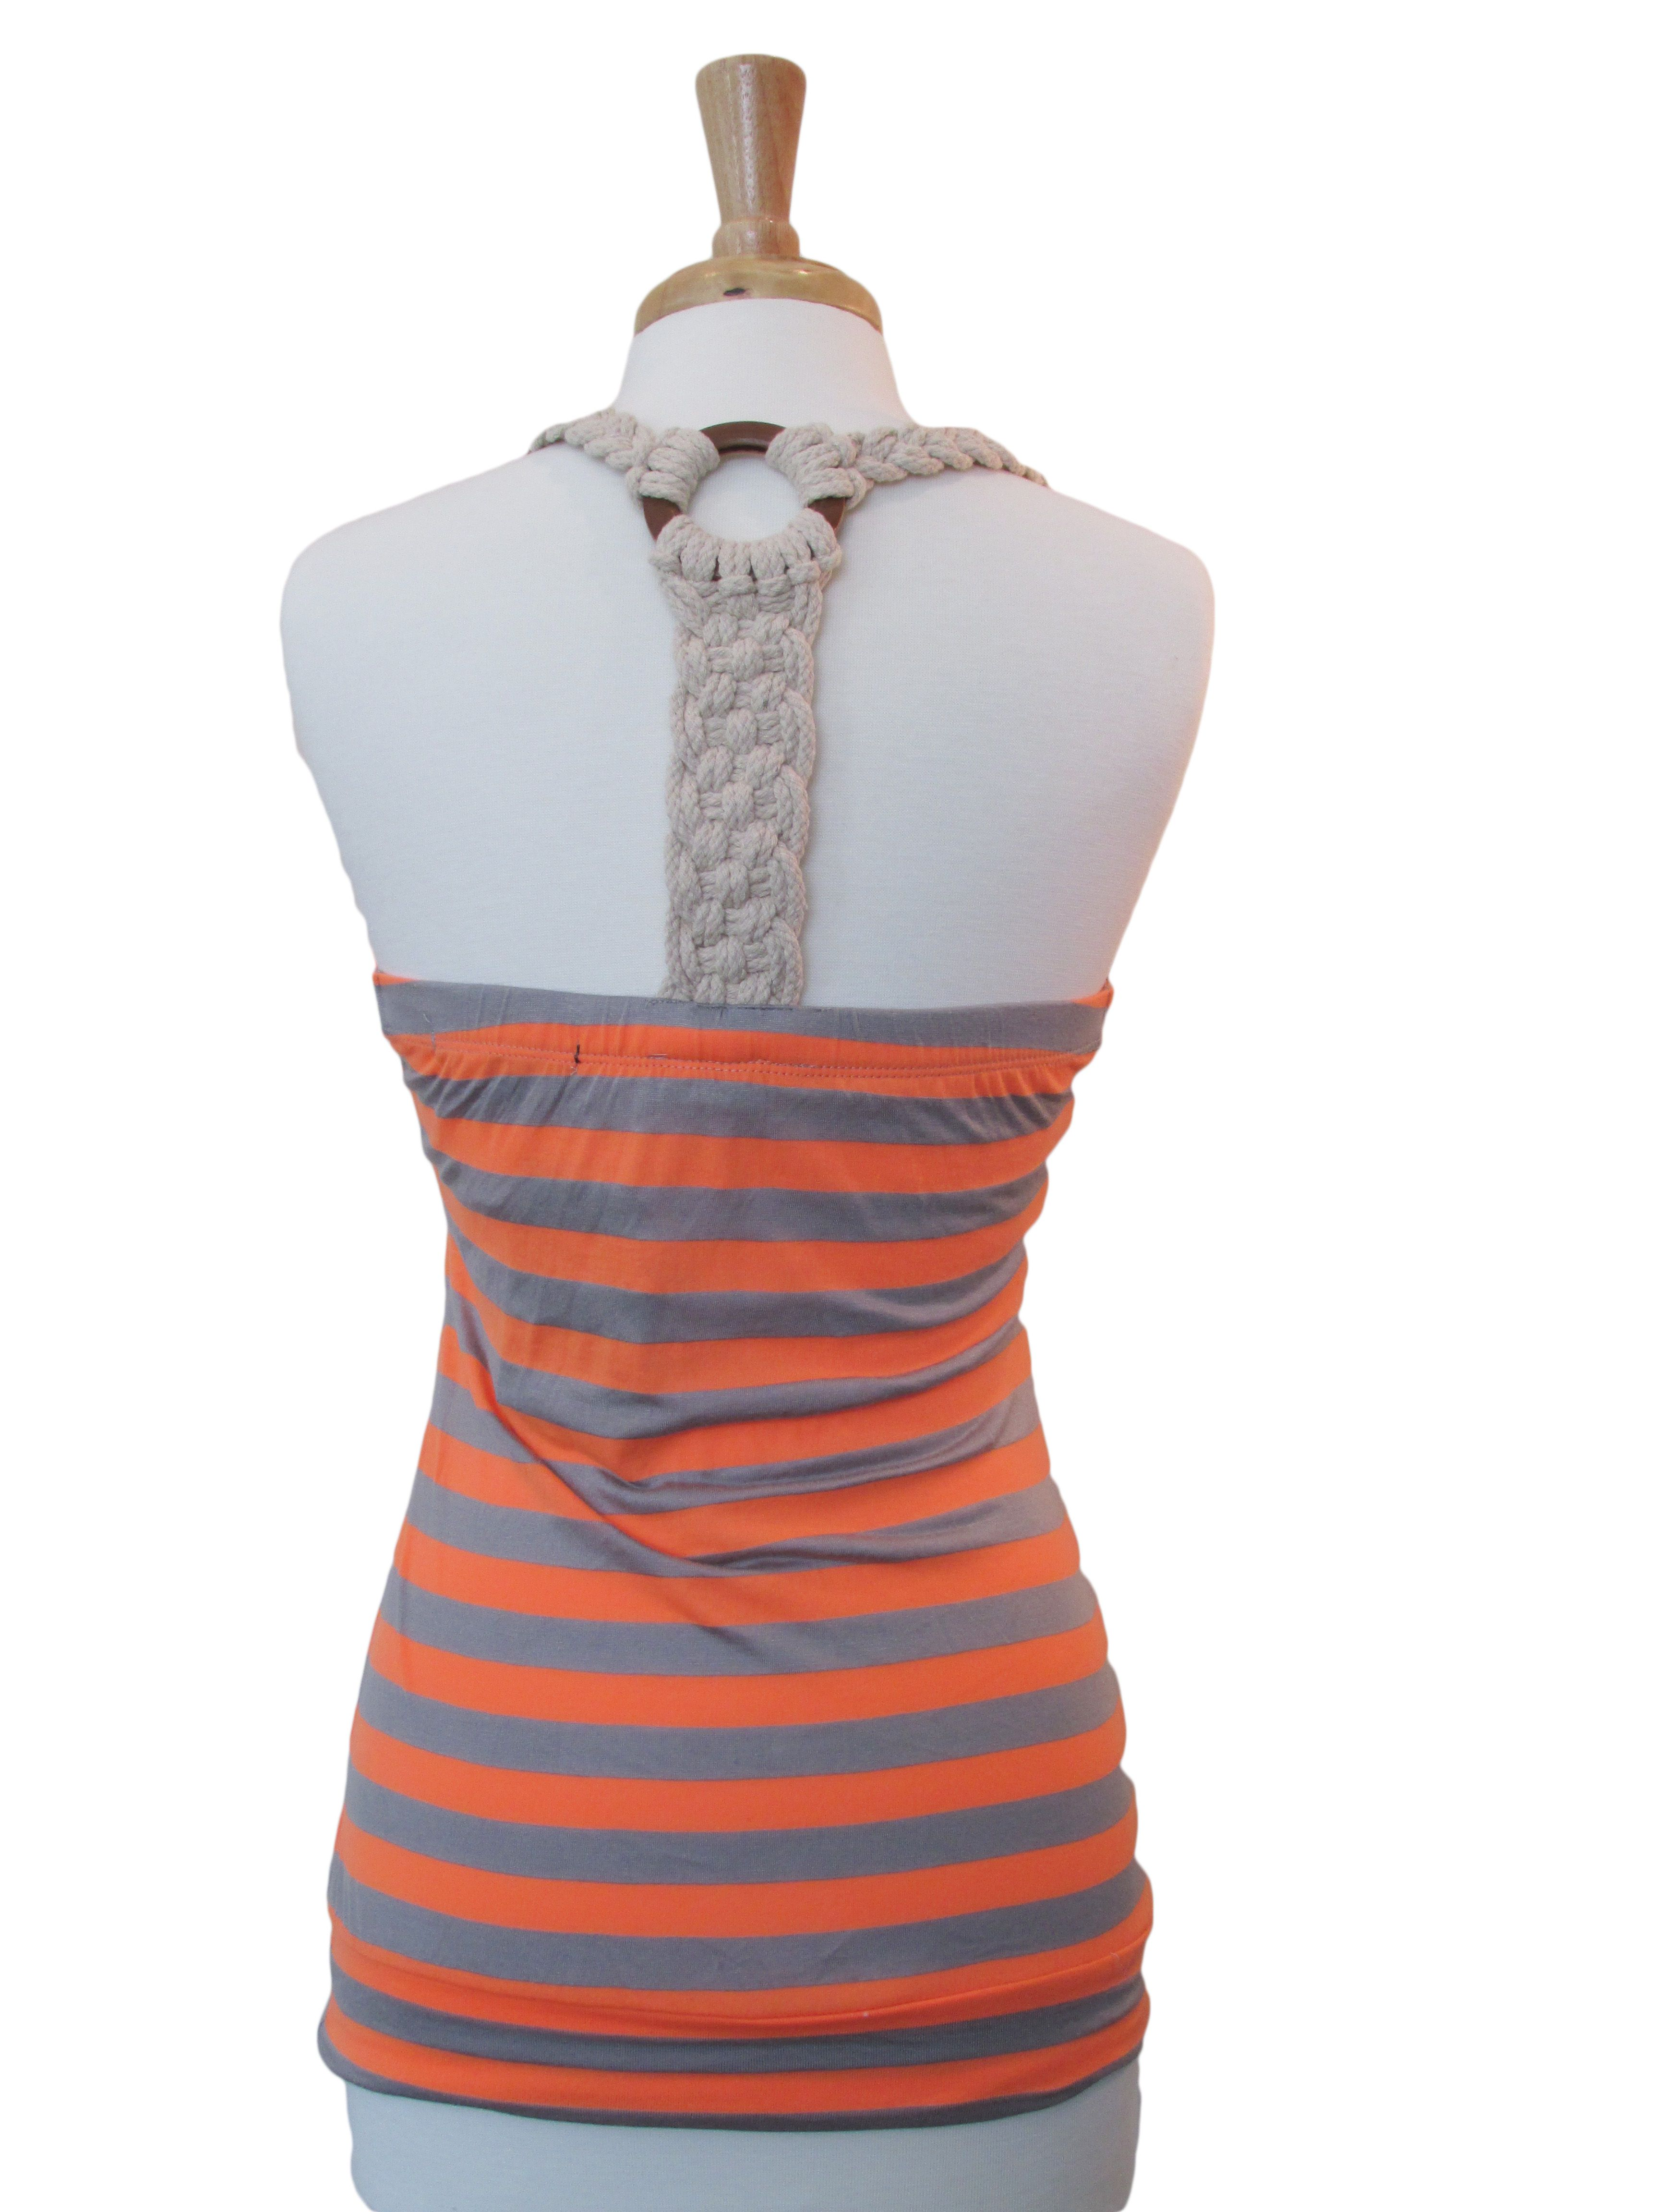 Orange and gray striped tank, with braided rope down the back. It runs a little bit on the small side.